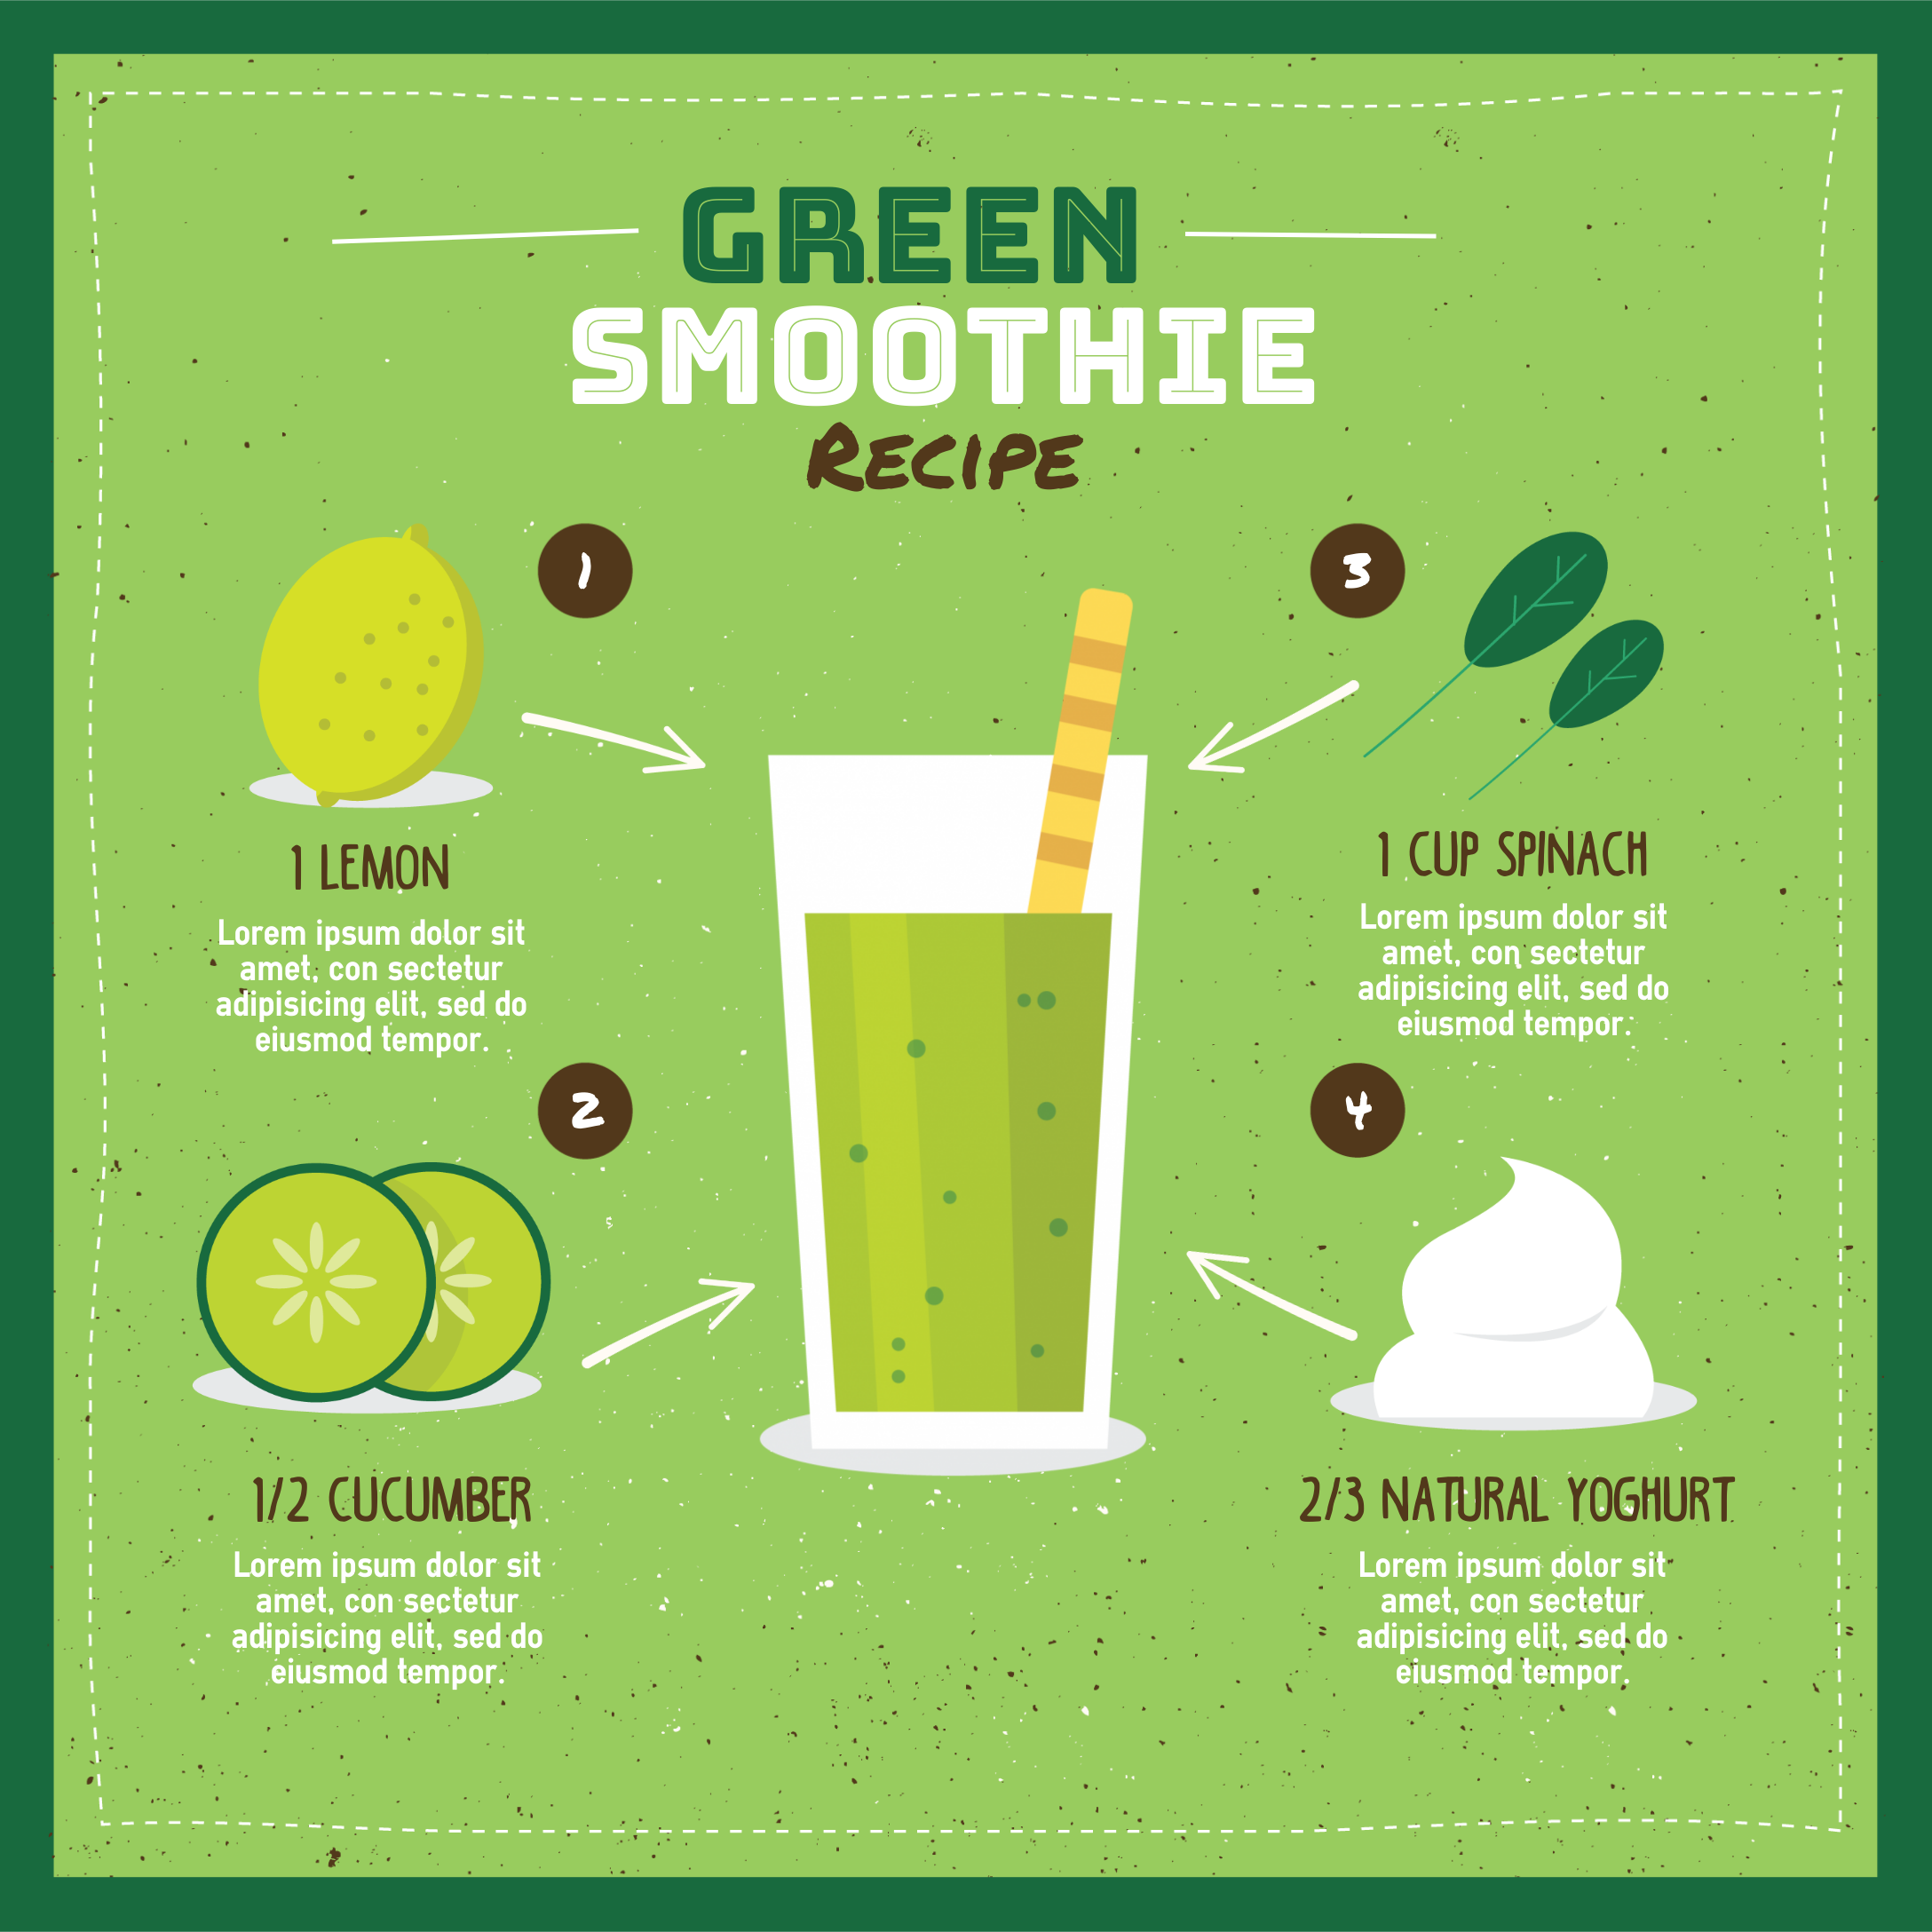 an infographic for a green smoothie recipe.